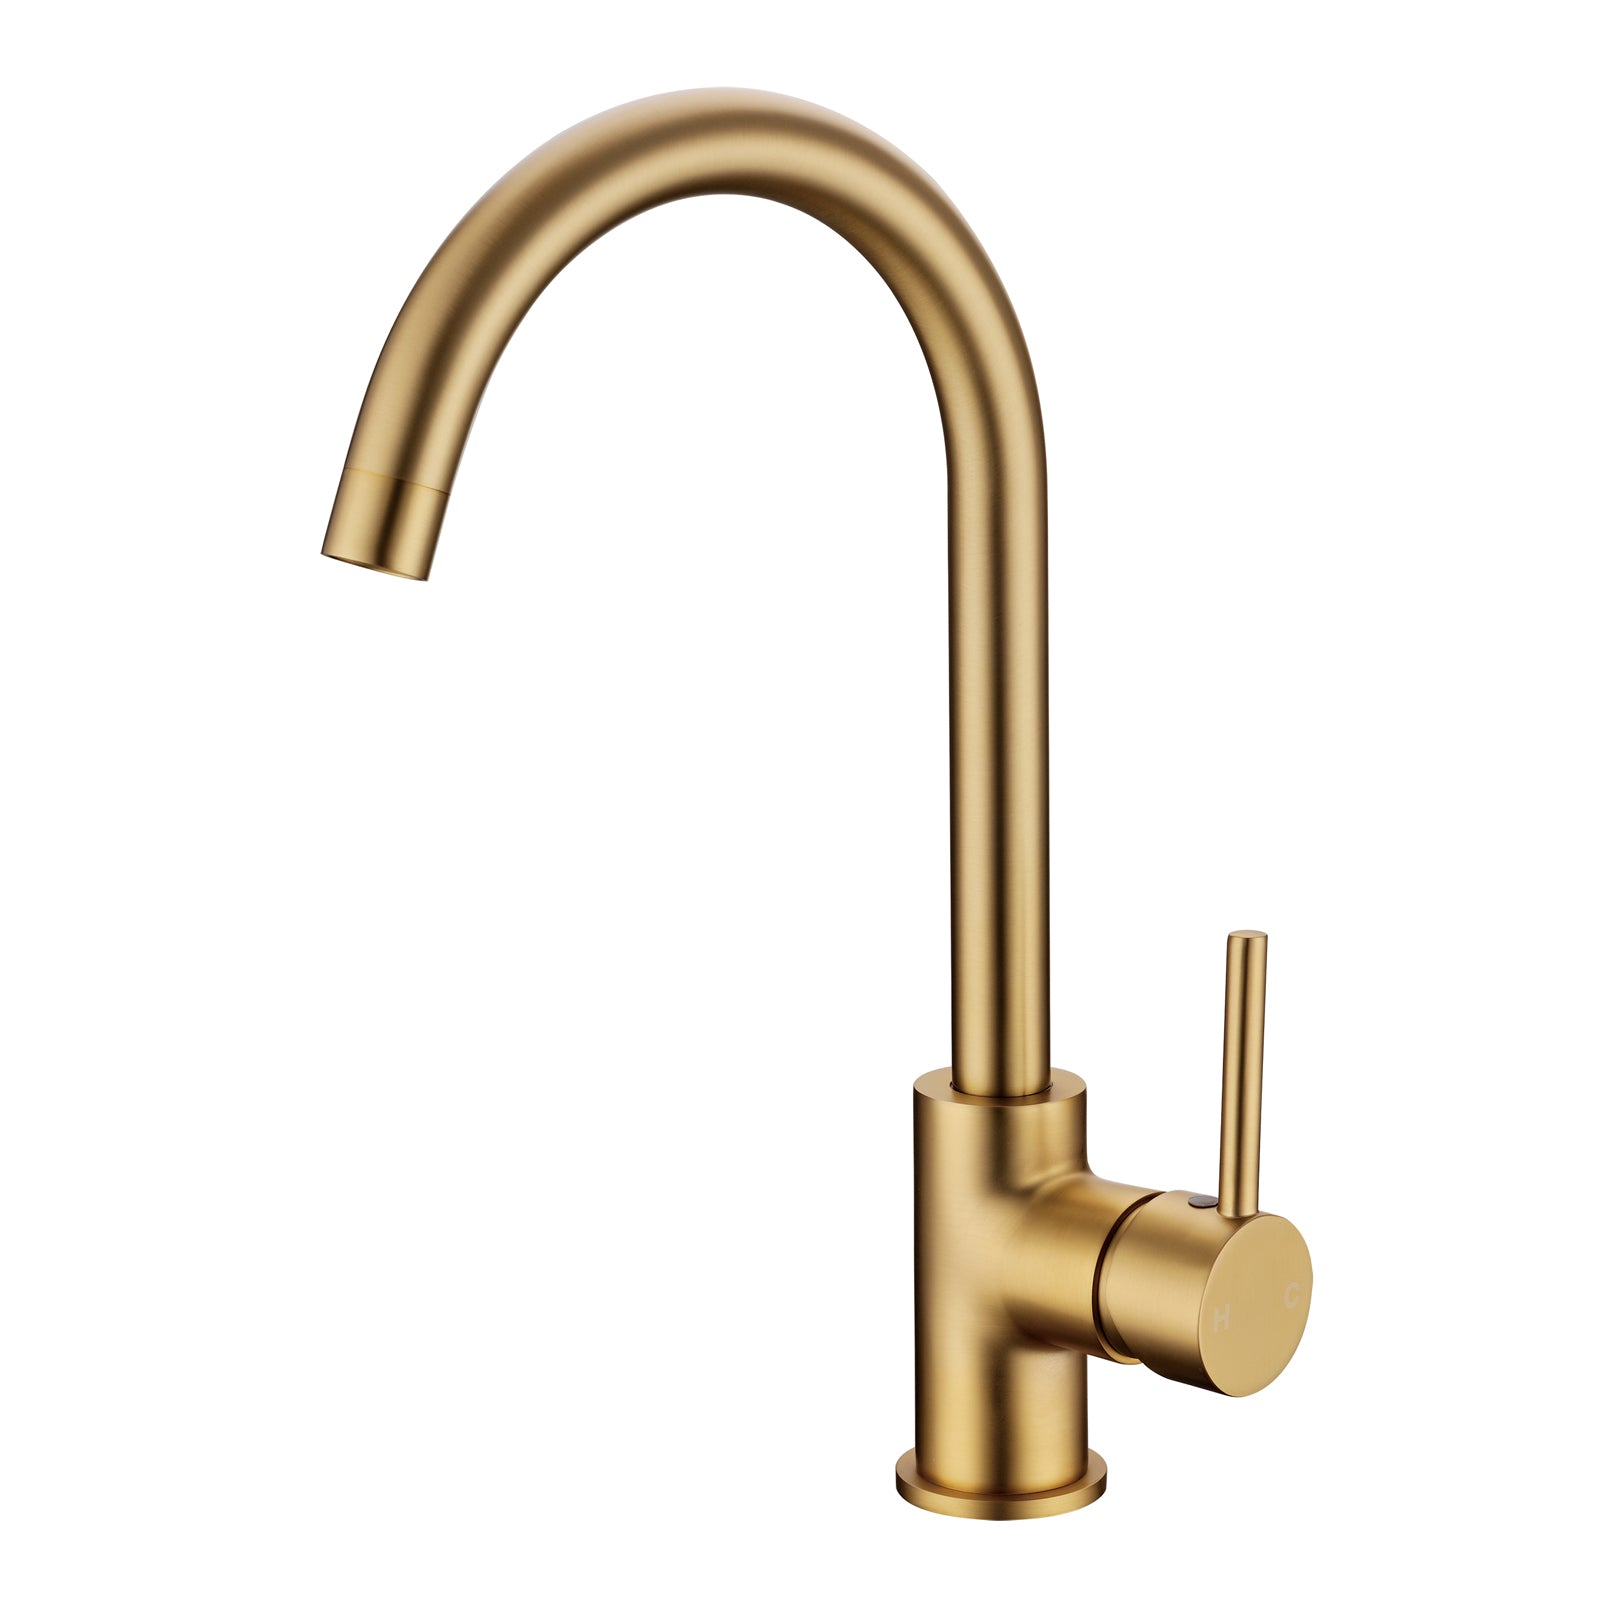 Pentro Brushed Yellow Gold Kitchen Mixer